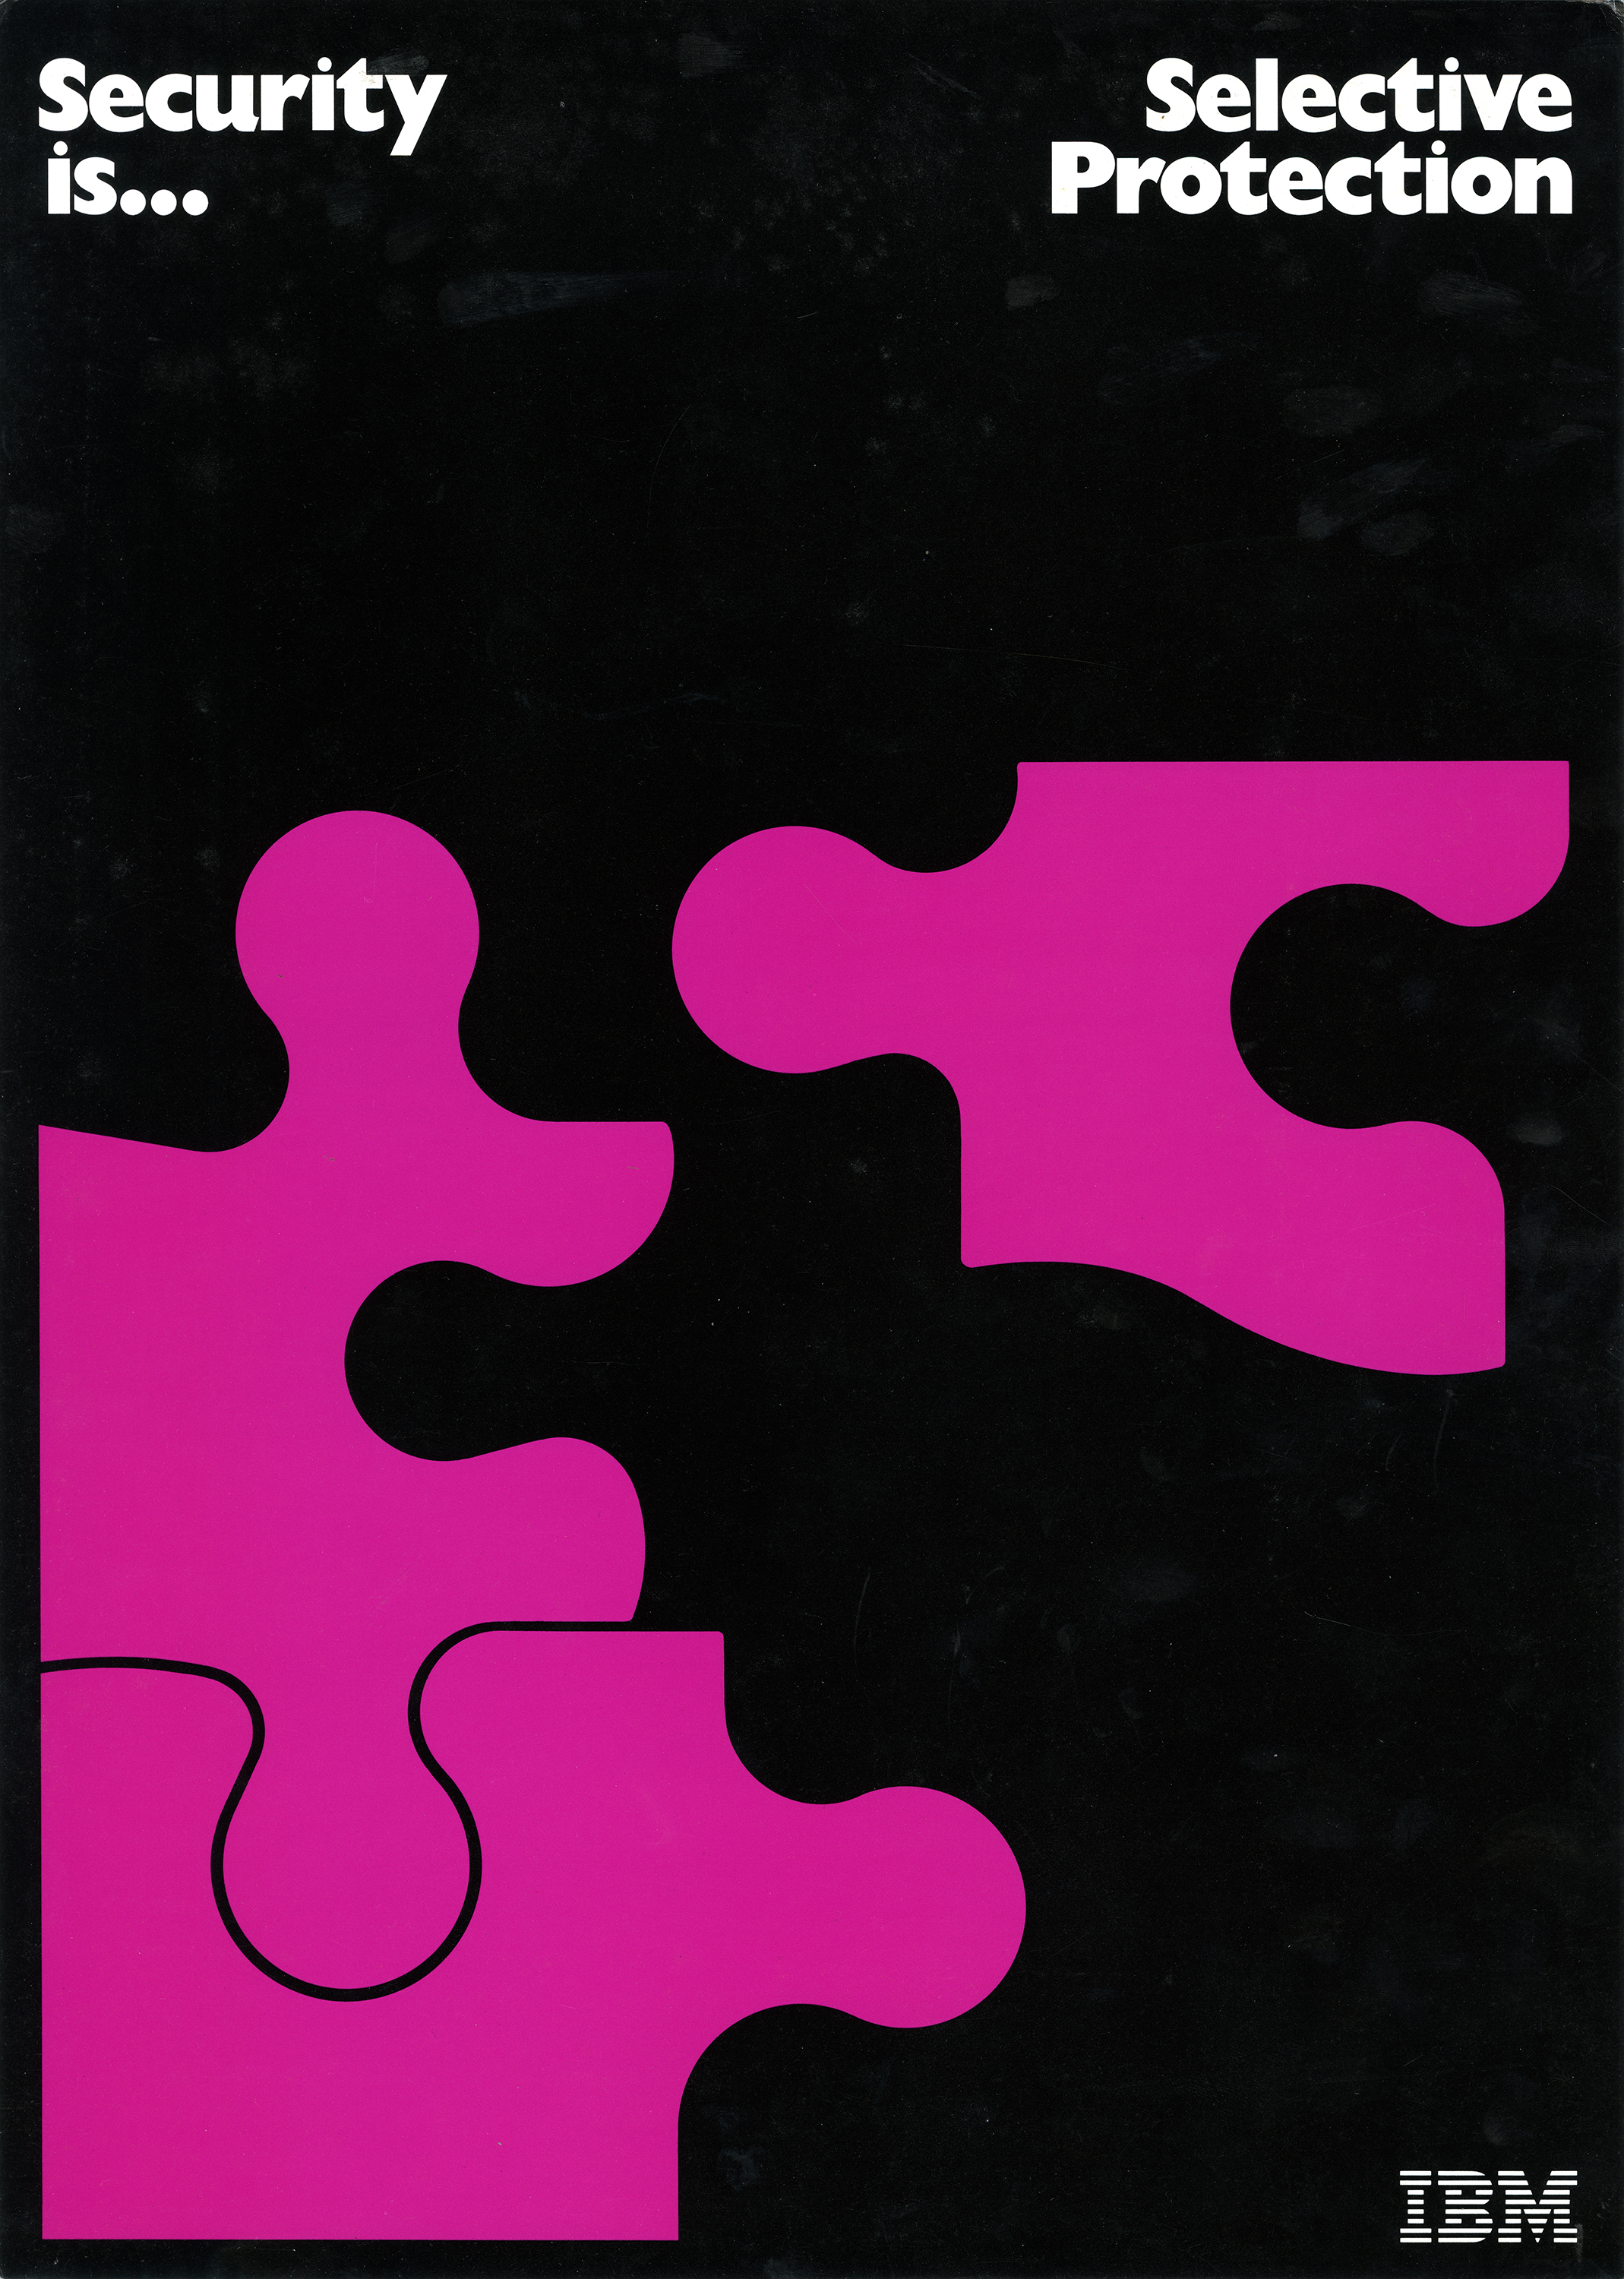 "Poster features hot pink puzzle pieces shapes coming together against a black background; text, ""Security Is...Selective Protection,"" appears in white."